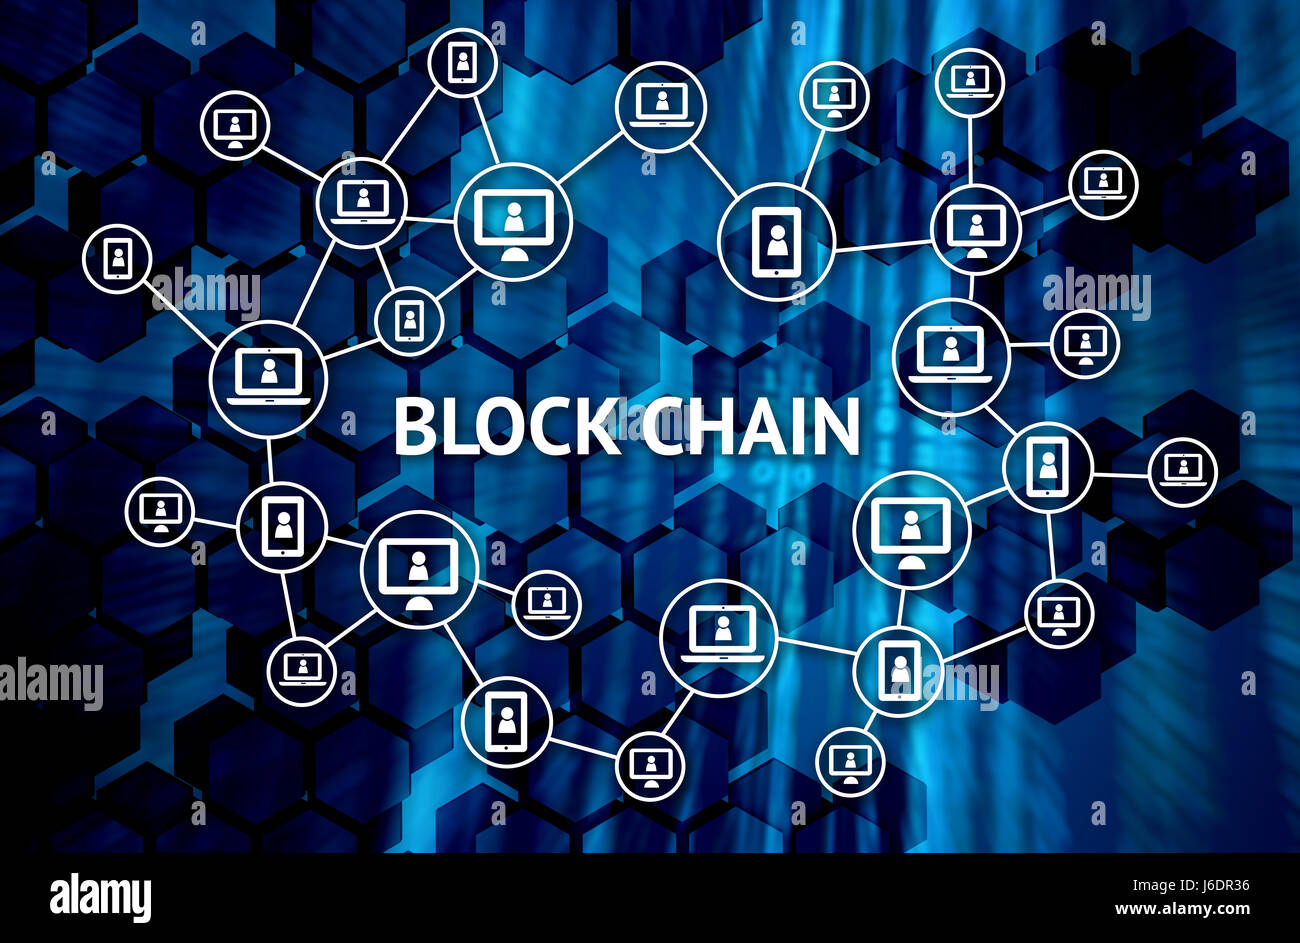 Blockchain network concept , Distributed ledger technology , Block